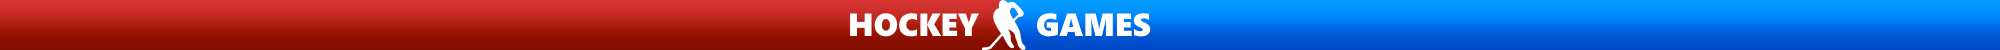 Hockey Games Online